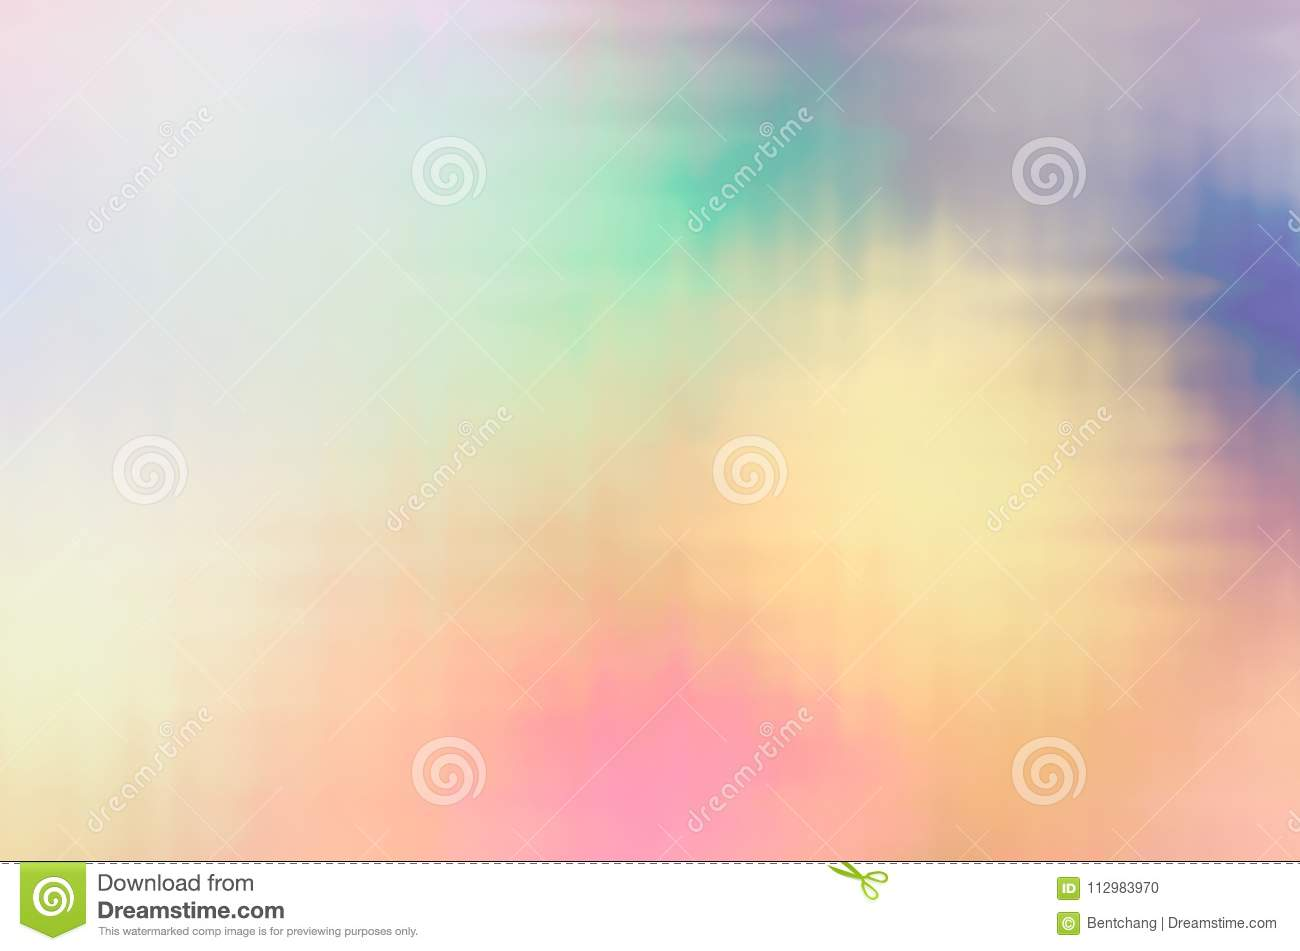 Background abstract motion, blur for design. Beautiful, ripple, pattern & dreamy.